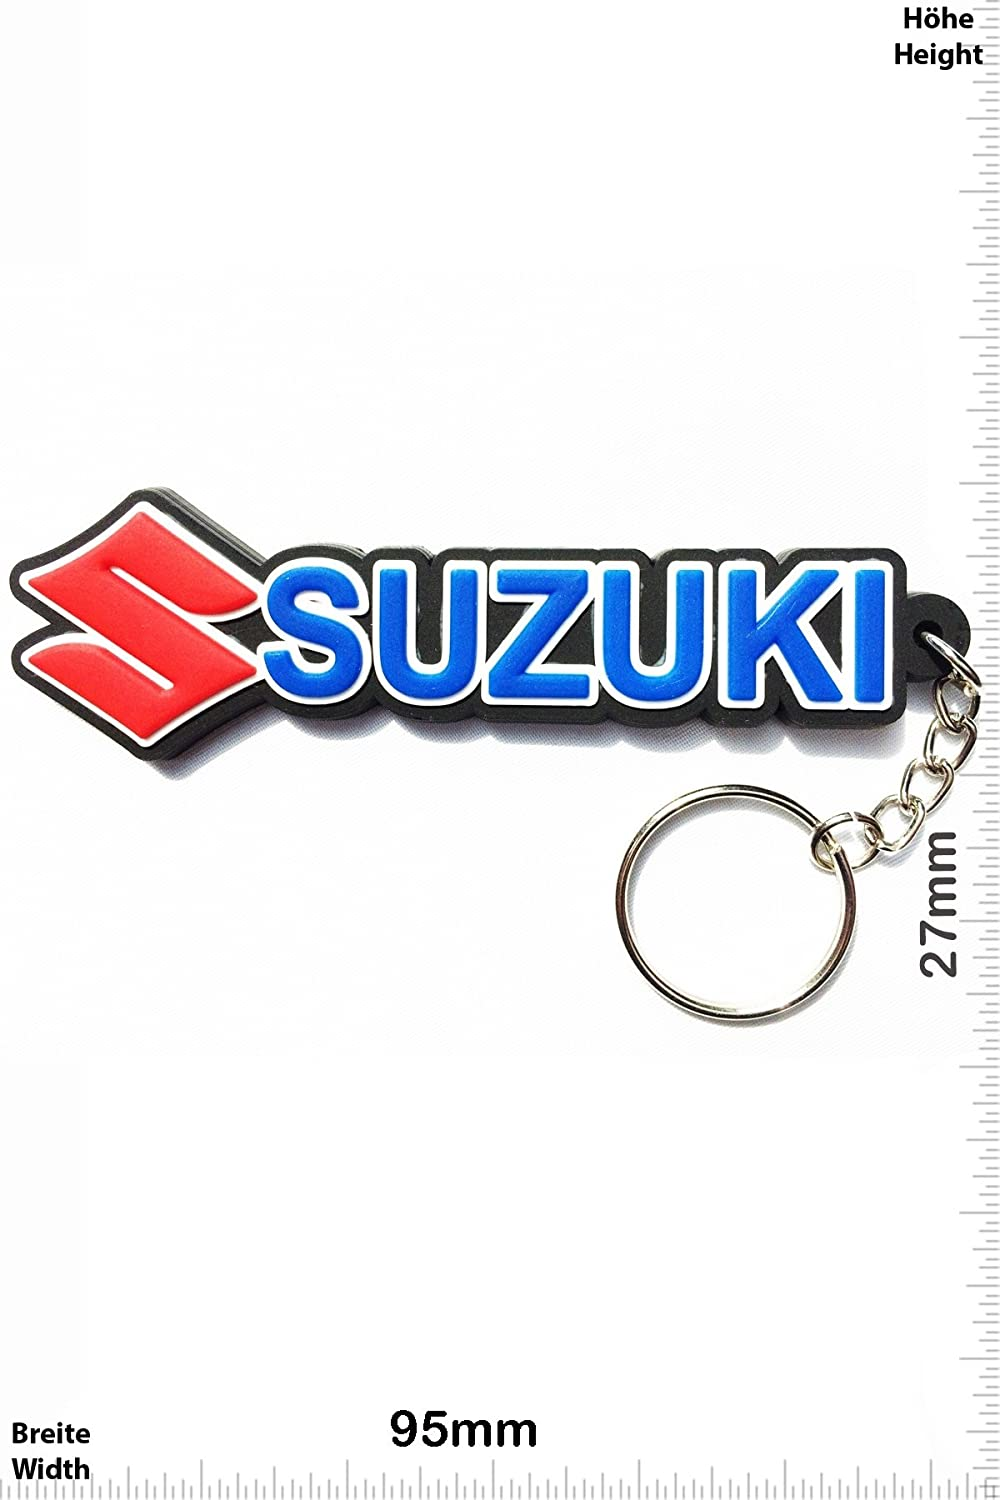 Kautschuk Rrubber Keyring Suzuki Key Ring Motorbike perfect also bags Car Scooter Give away Motocross blue Keychains Porte-cl/és Motorcycle wallets or briefcase